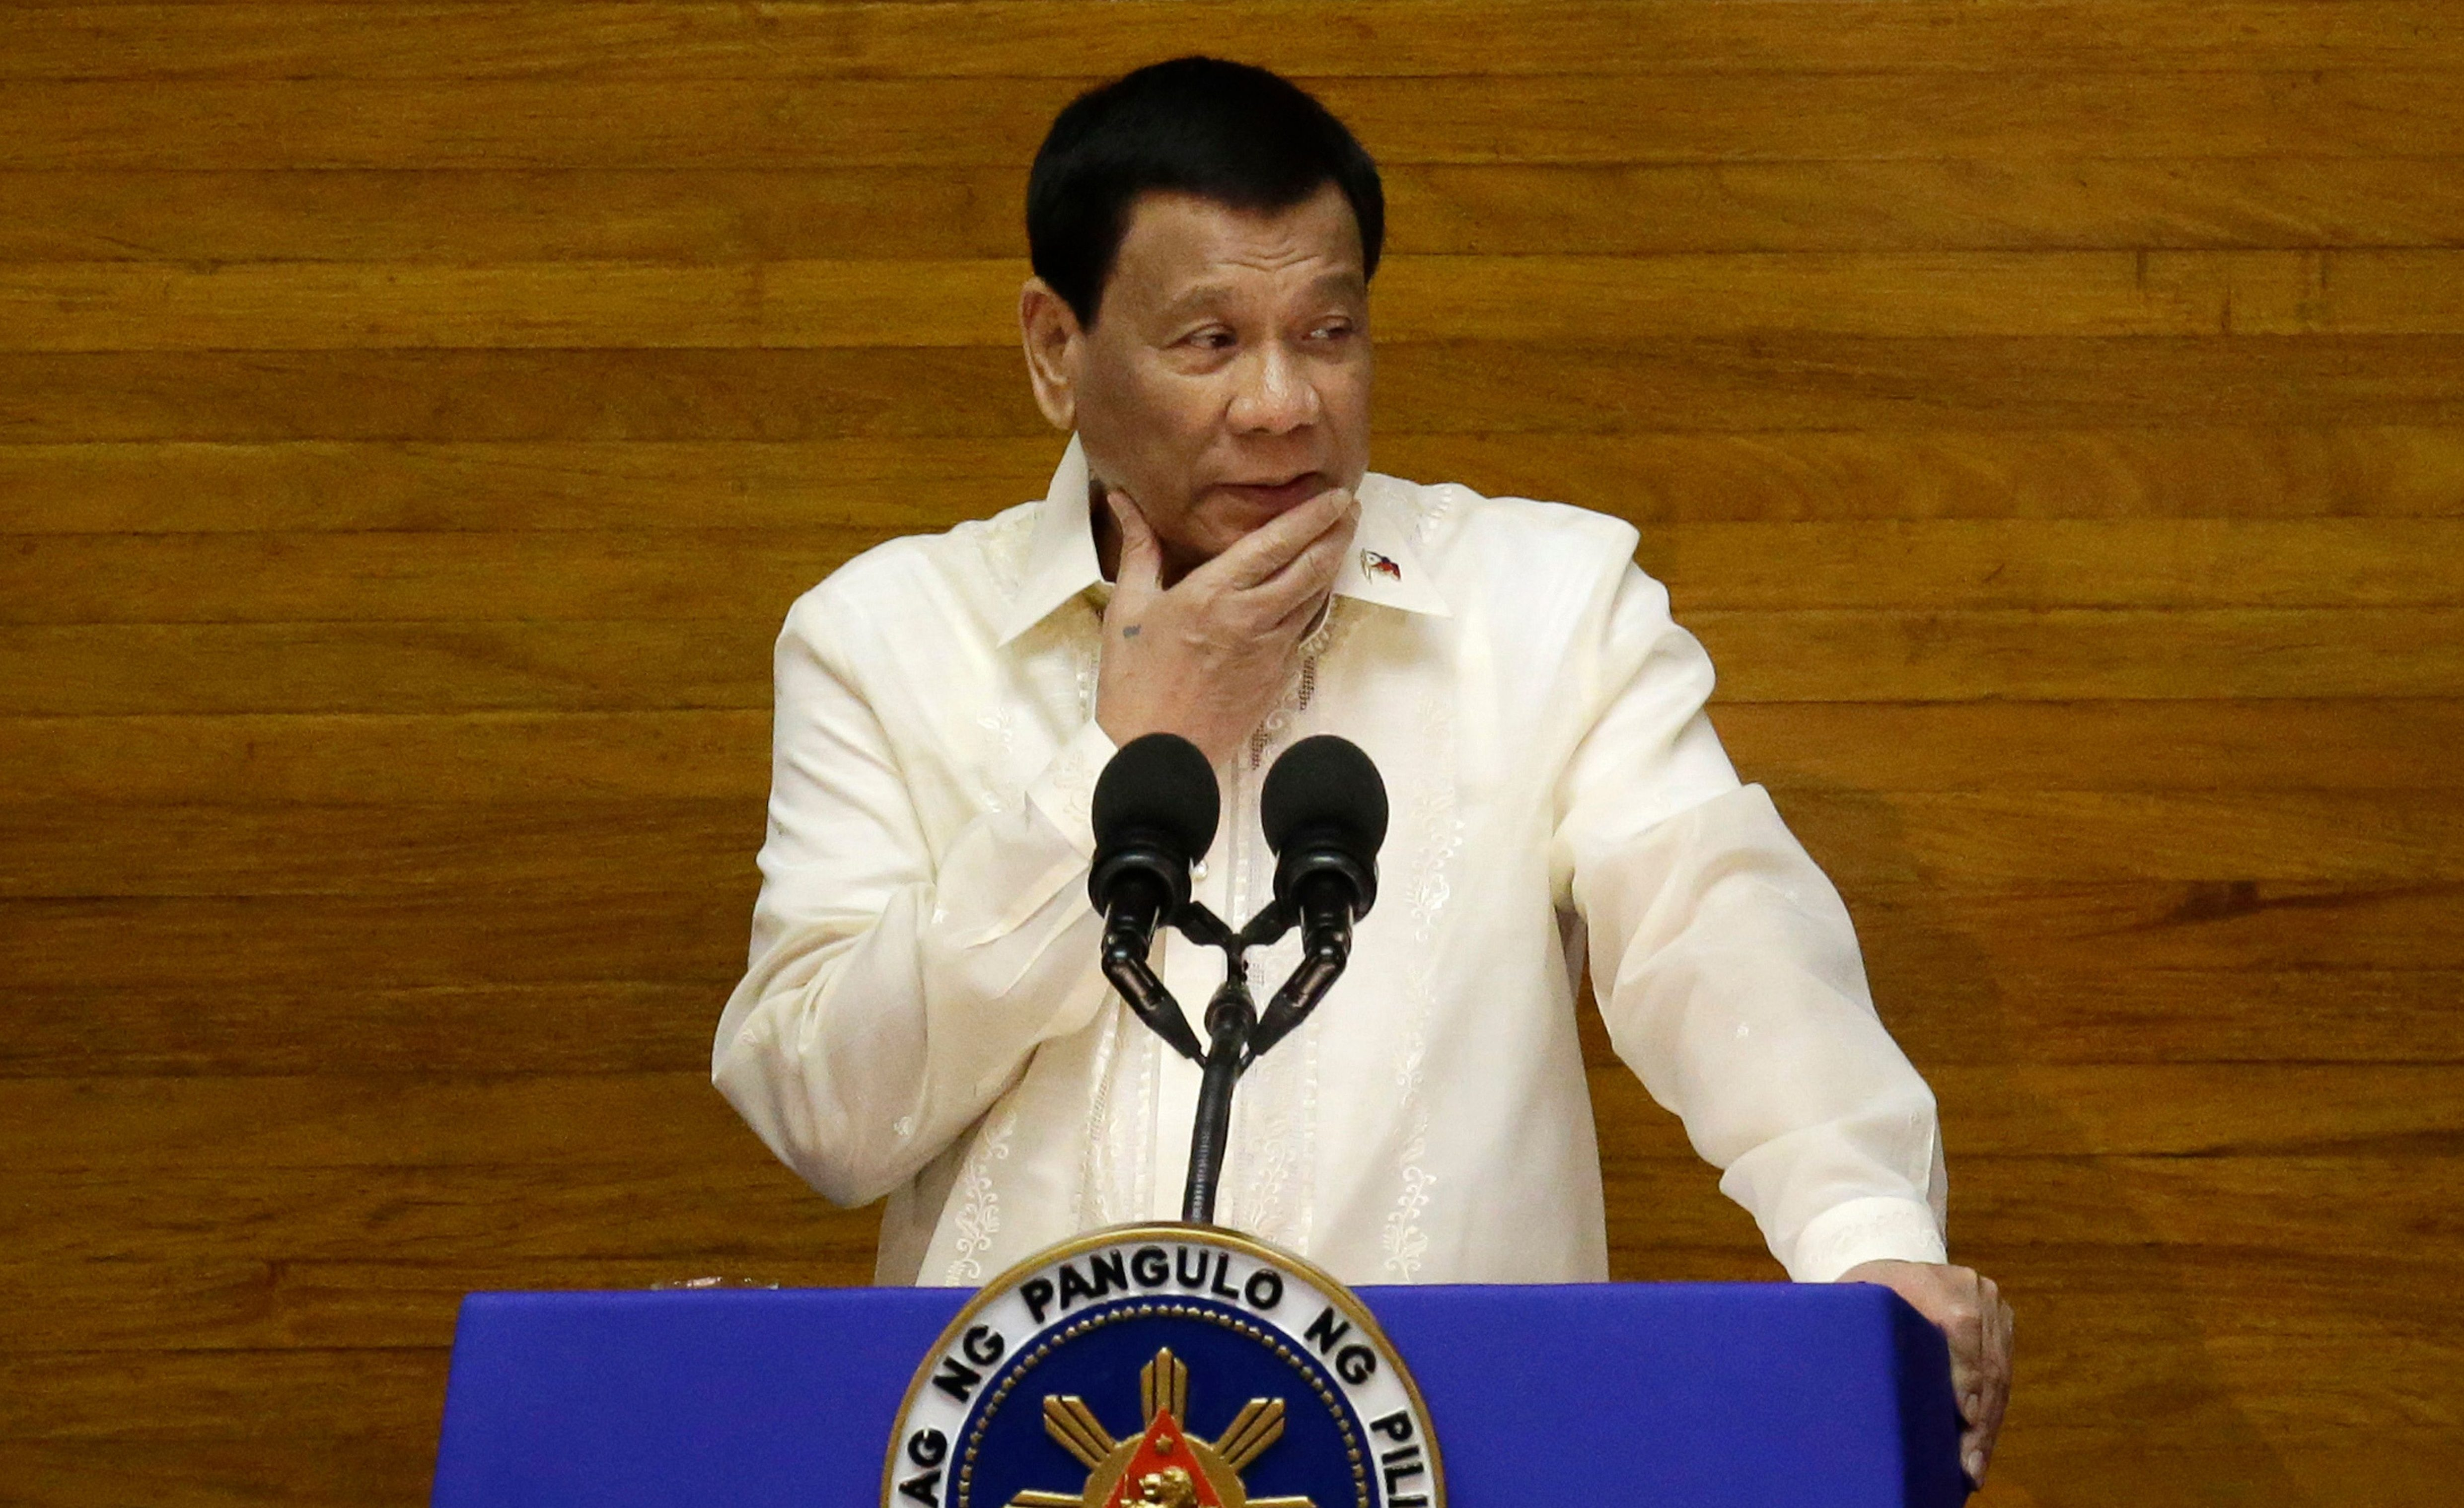 Philippine President Rodrigo Duterte pauses during his third State of the Nation Address at the House of Representatives in Quezon City, Manila, Philippines Monday, July 23, 2018.